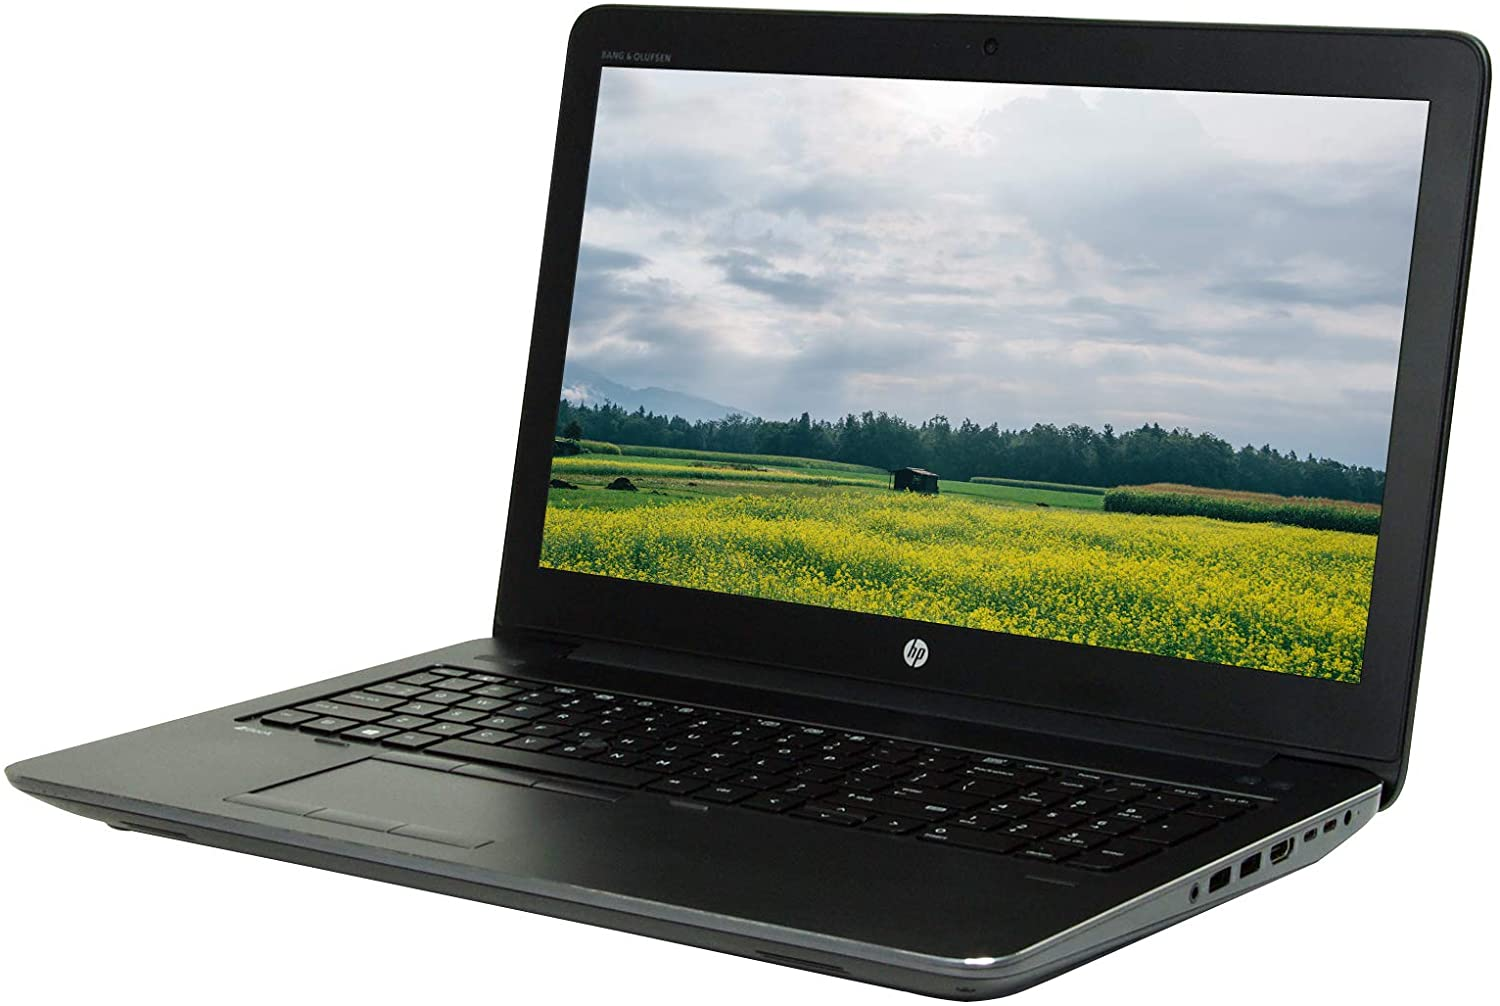 """HP Mobile Worstation ZBook 15 G3 15.6"""" FHD Laptop, Core i7-6700HQ 2.6GHz, 16GB RAM, 512GB Solid State Drive, Windows 10 Pro 64bit, CAM, NVIDIA Quadro M1000M (Certified Refurished)"""